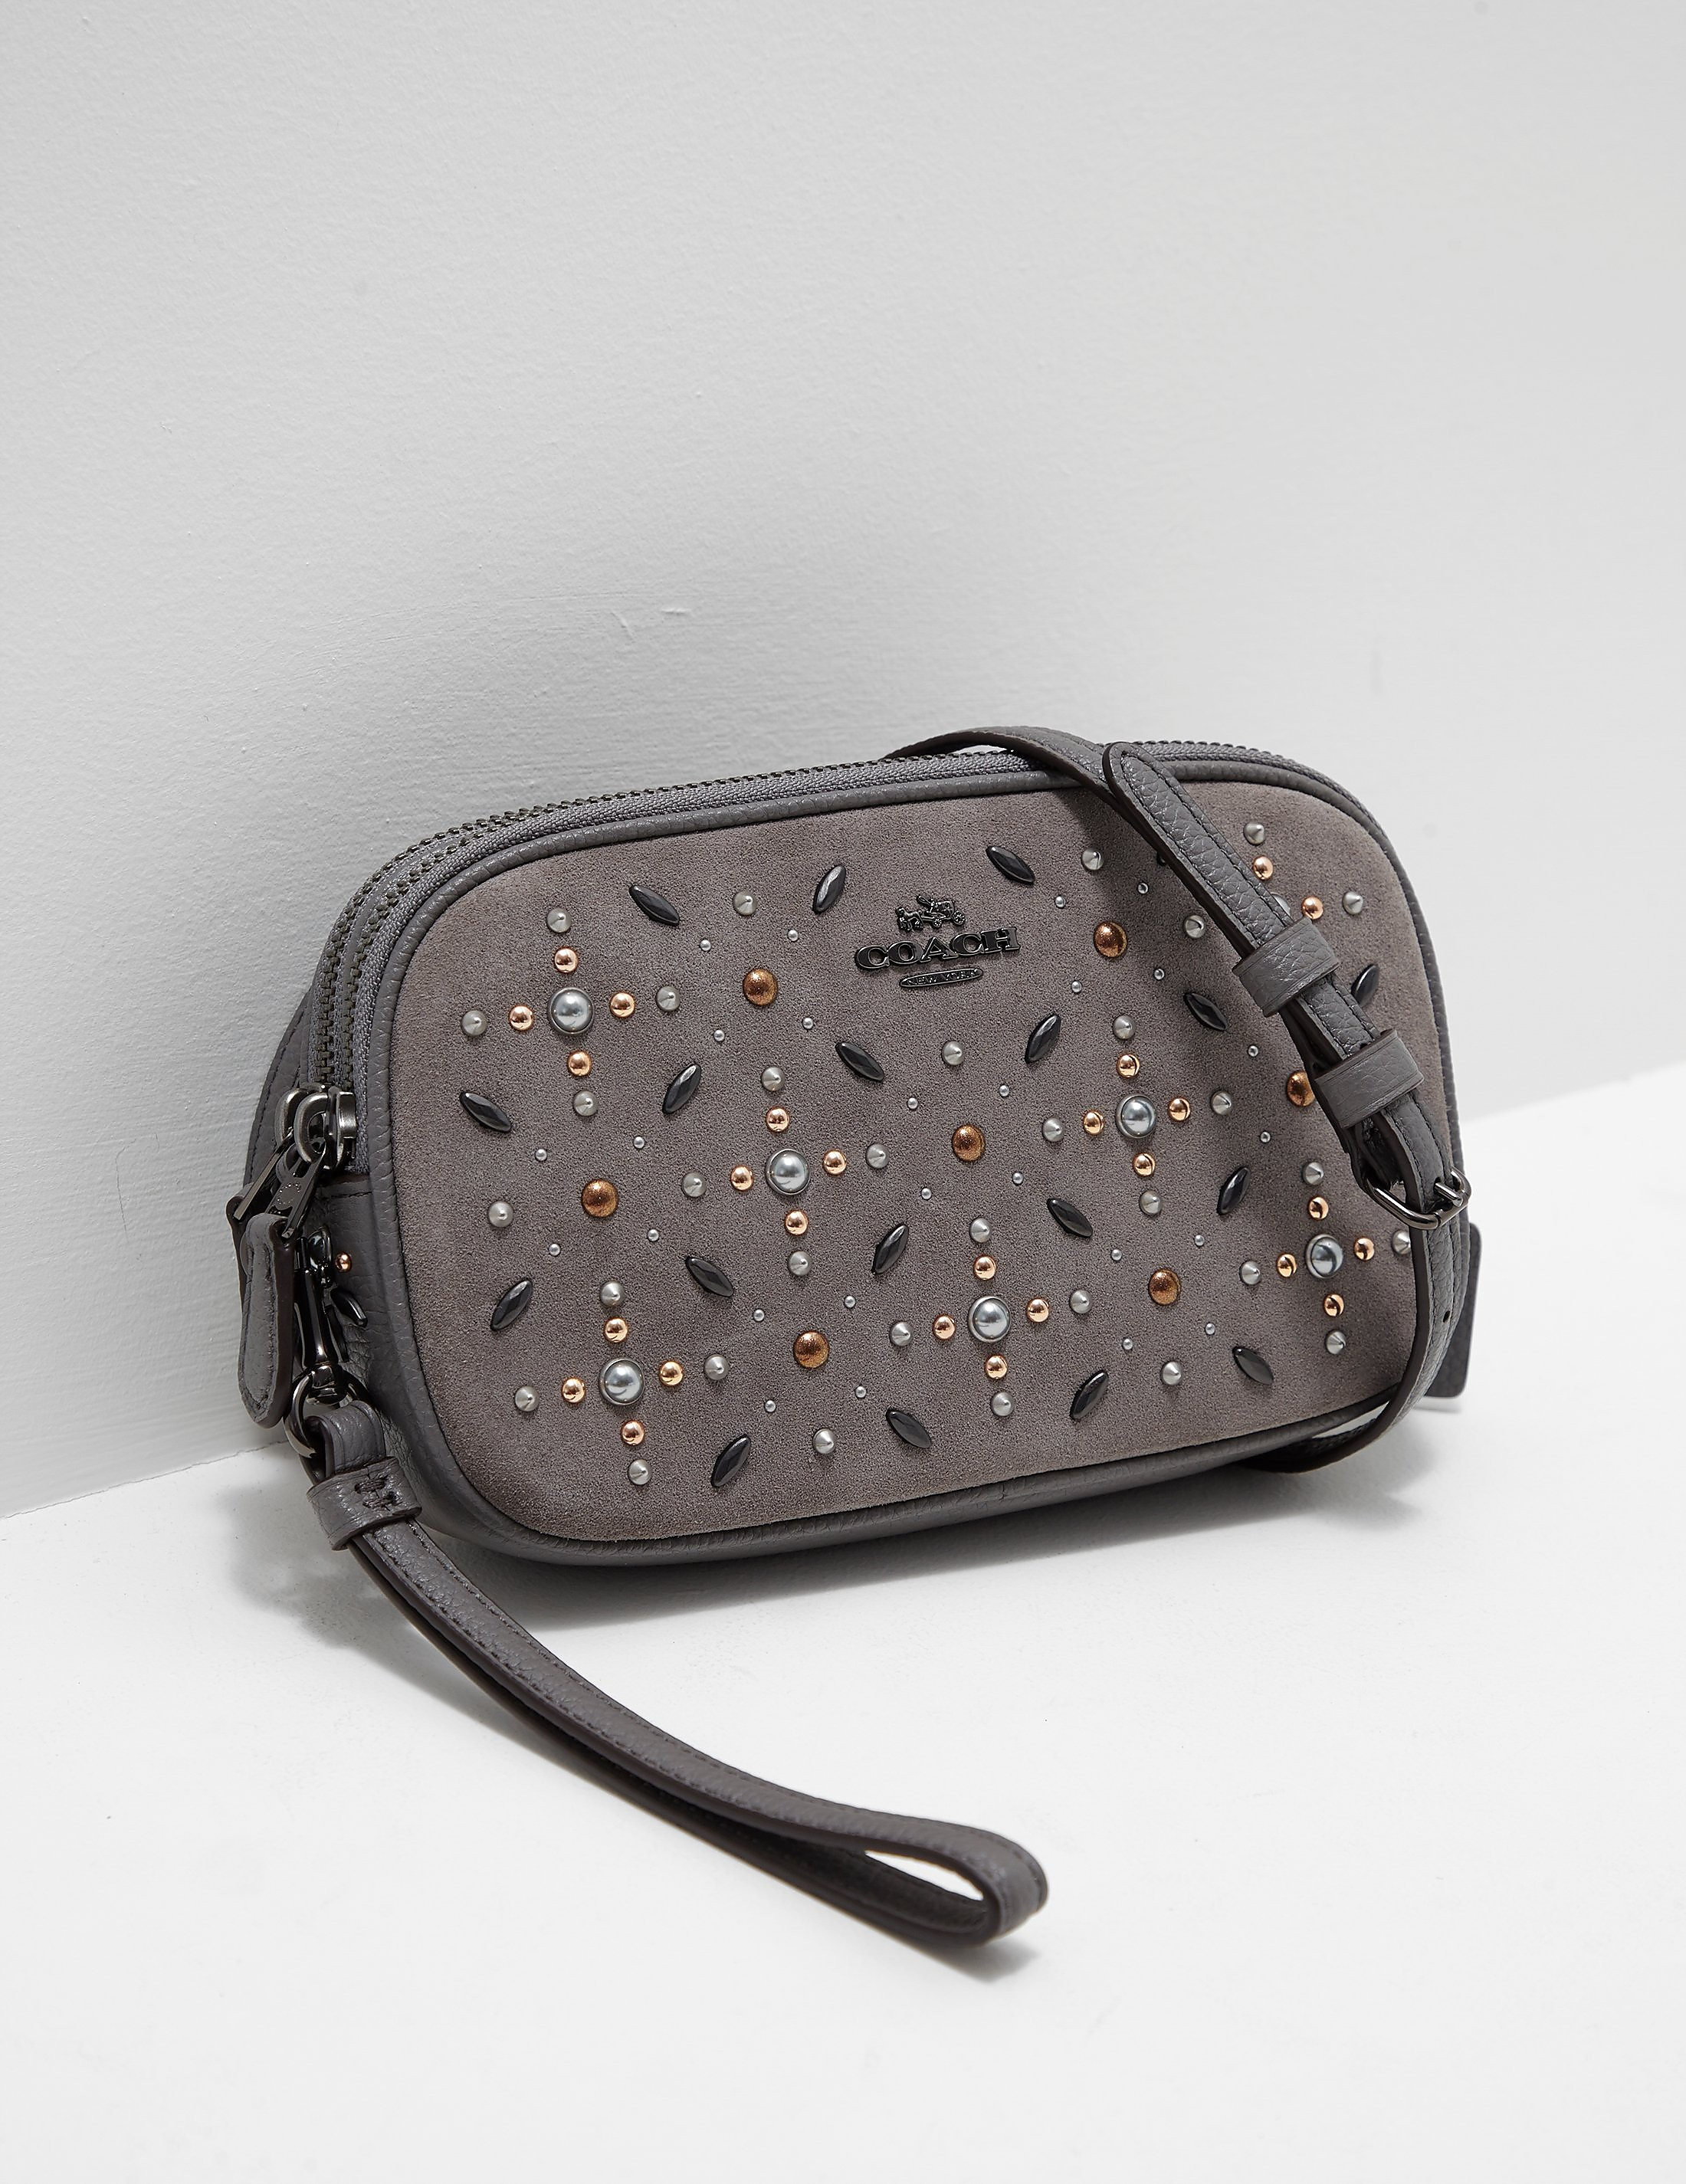 COACH Embellished Crossbody Bag